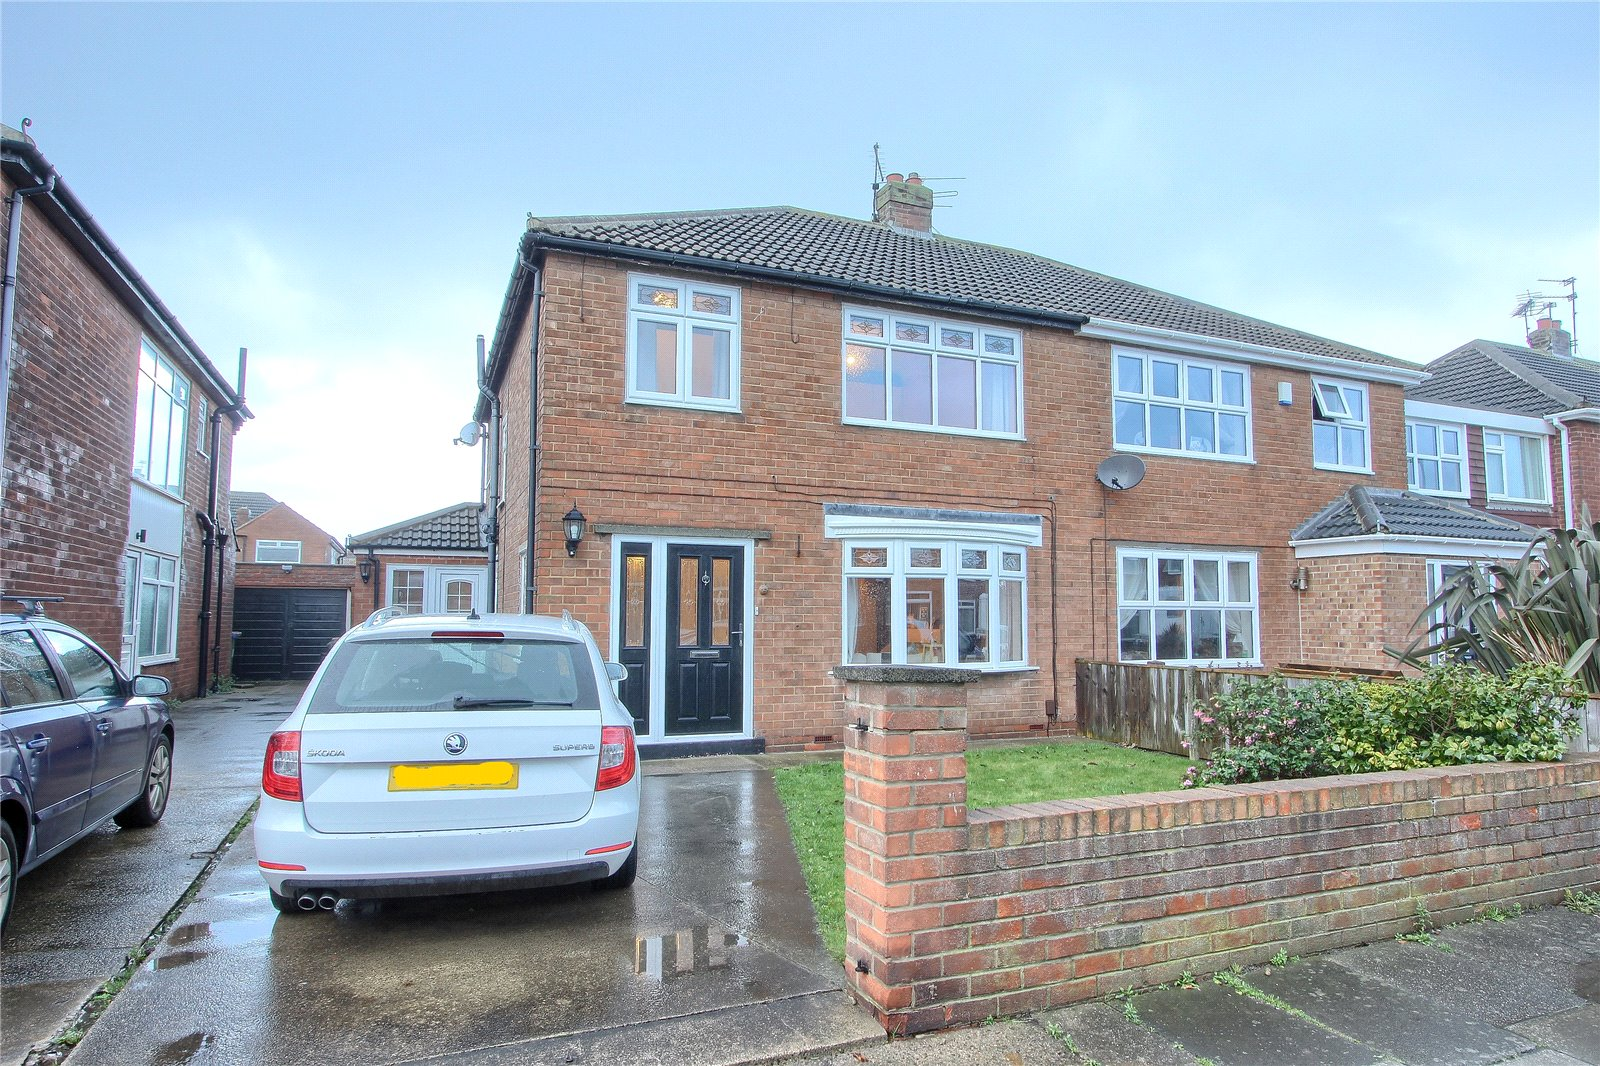 3 bed house for sale in Ascot Road, Redcar 1